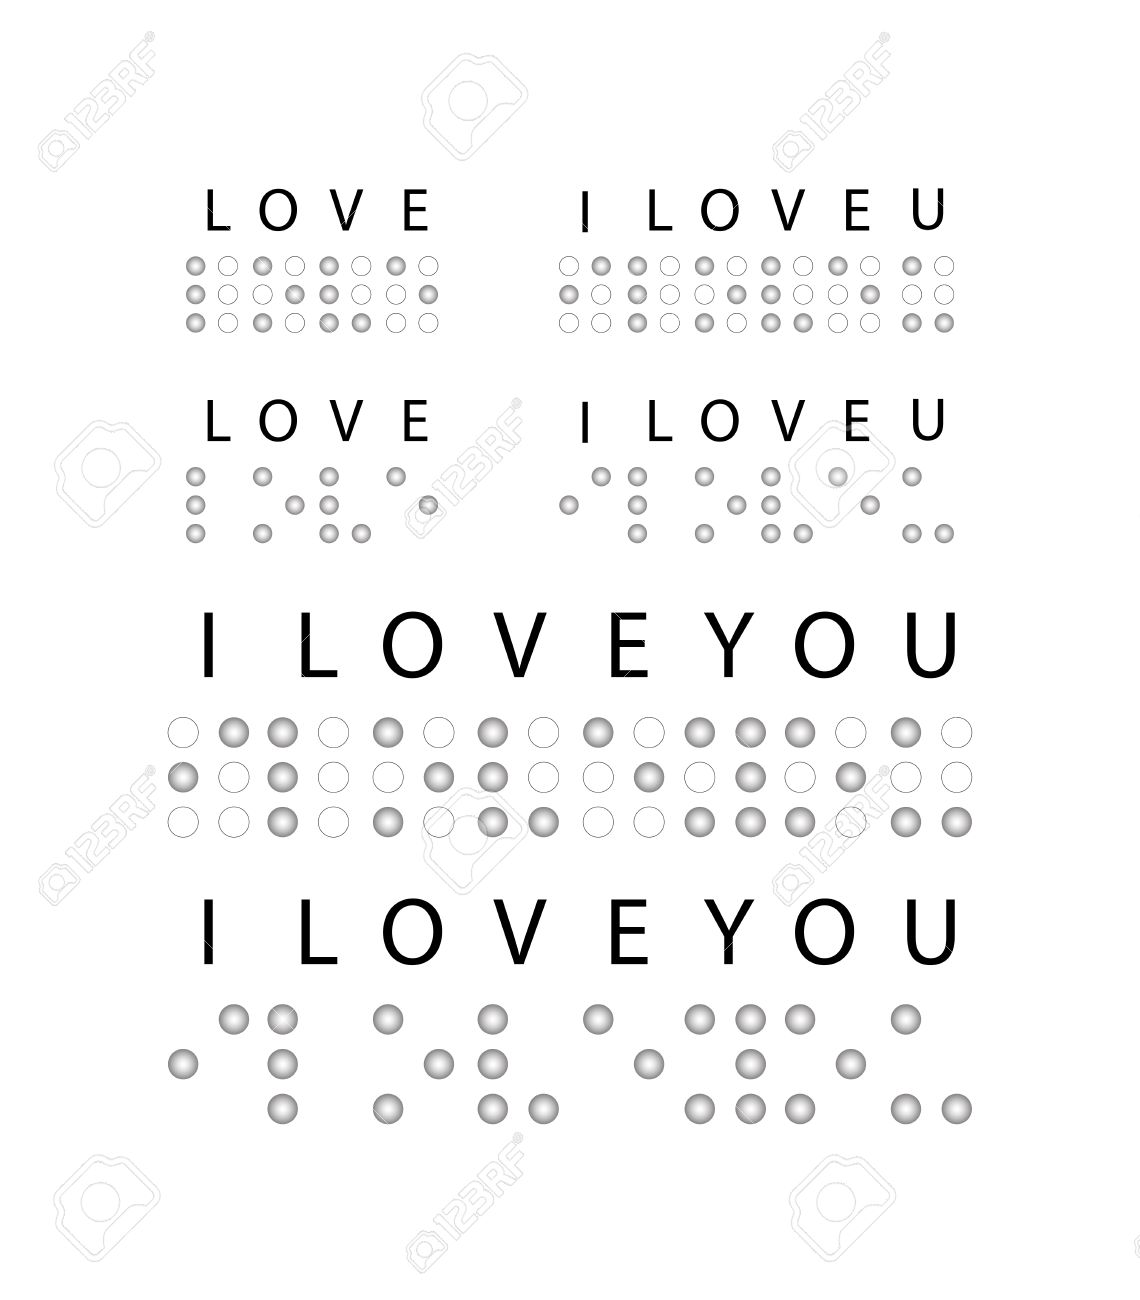 i love you in braille  Vector Illustration Stock Vector - 25431046